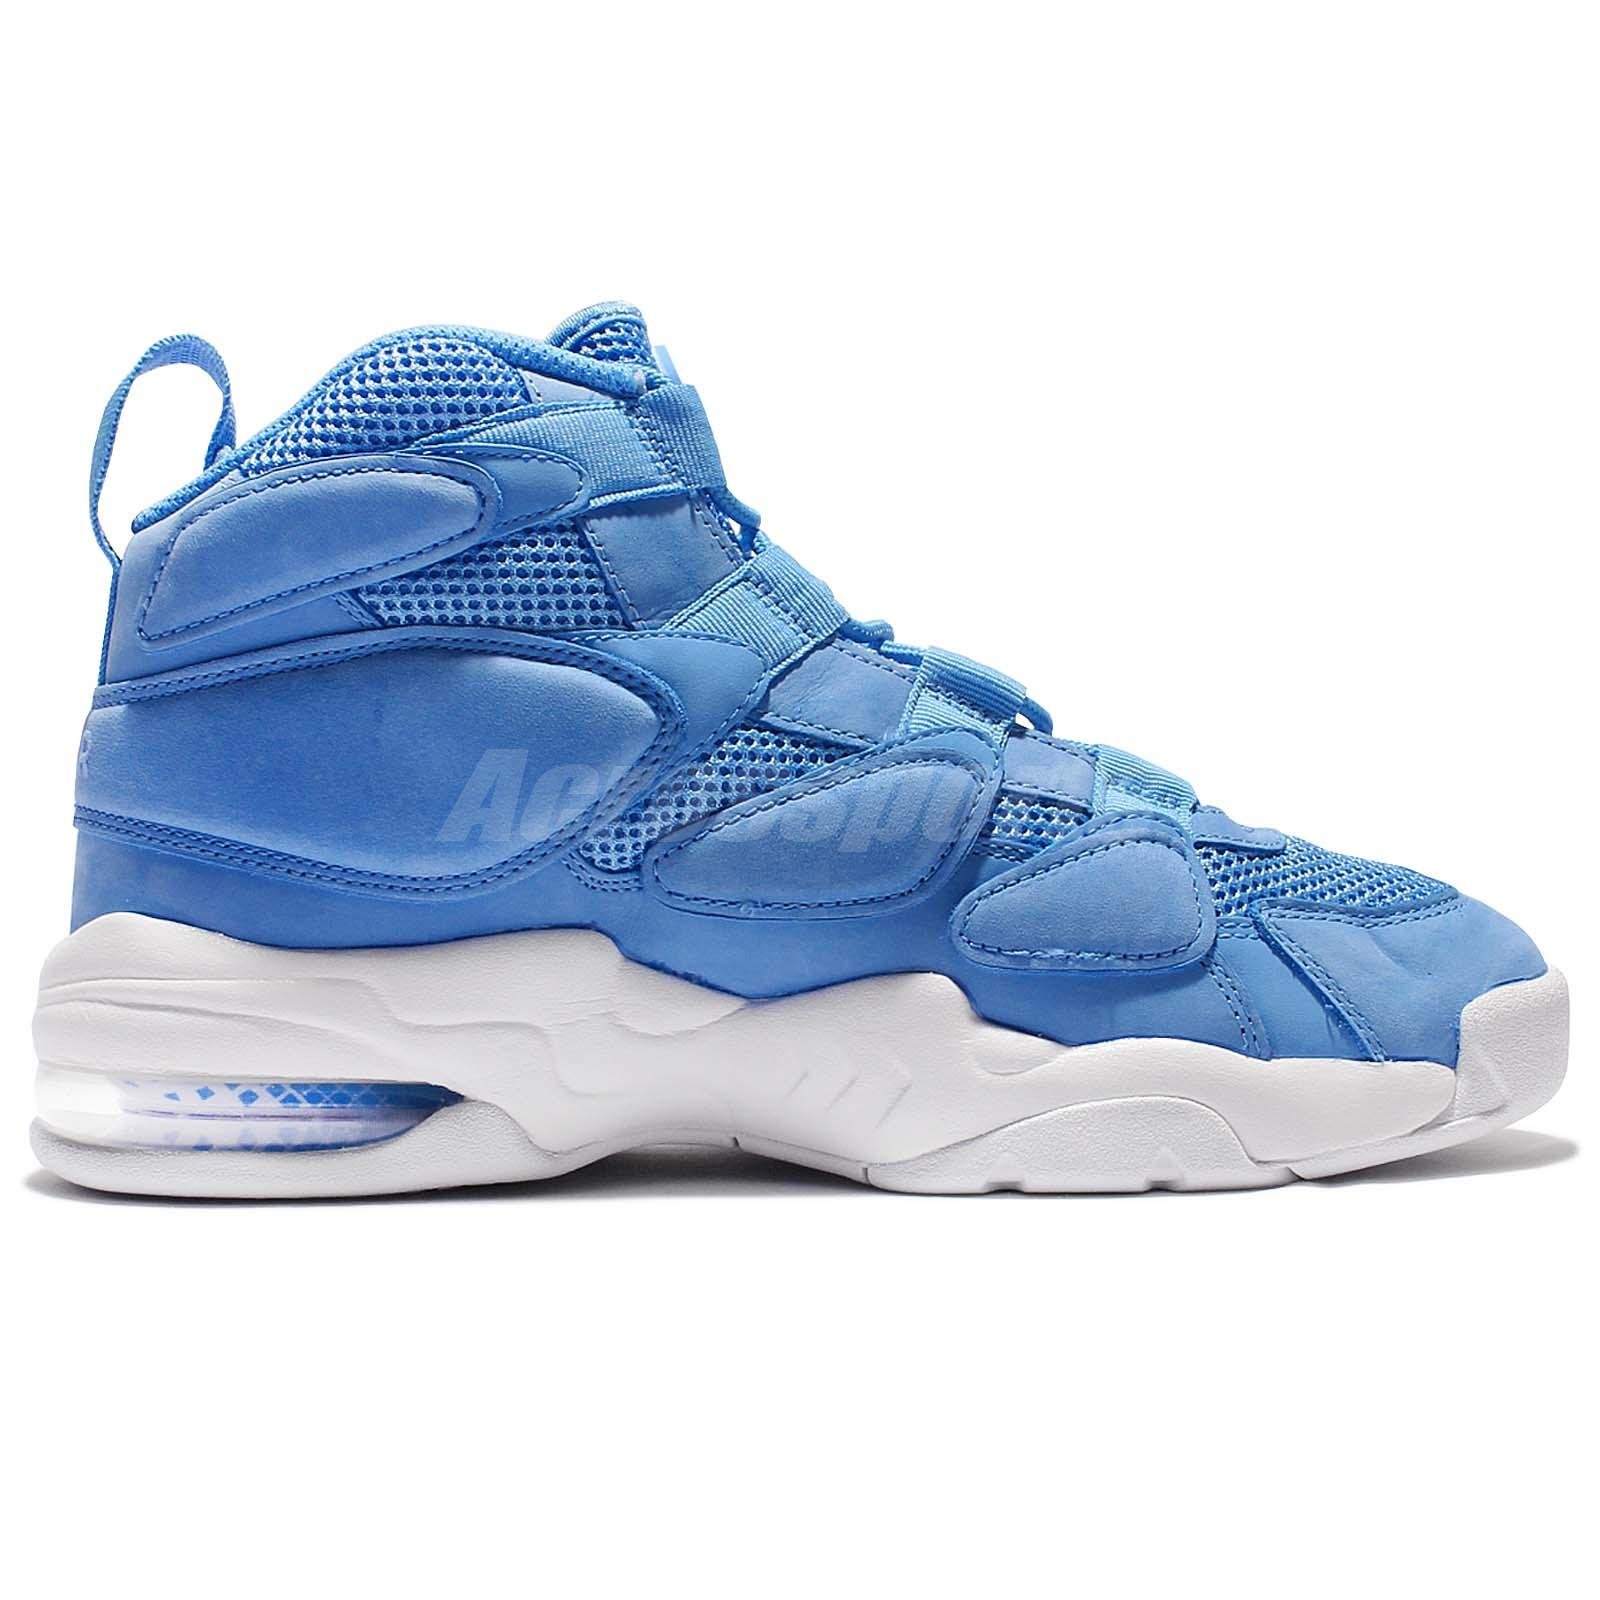 Nike Hombres Air Max 2 Uptempo 95 As Qs, Universidad Azul / Bleu Carolina / Bleu Carolina, 8 M Ee.uu.